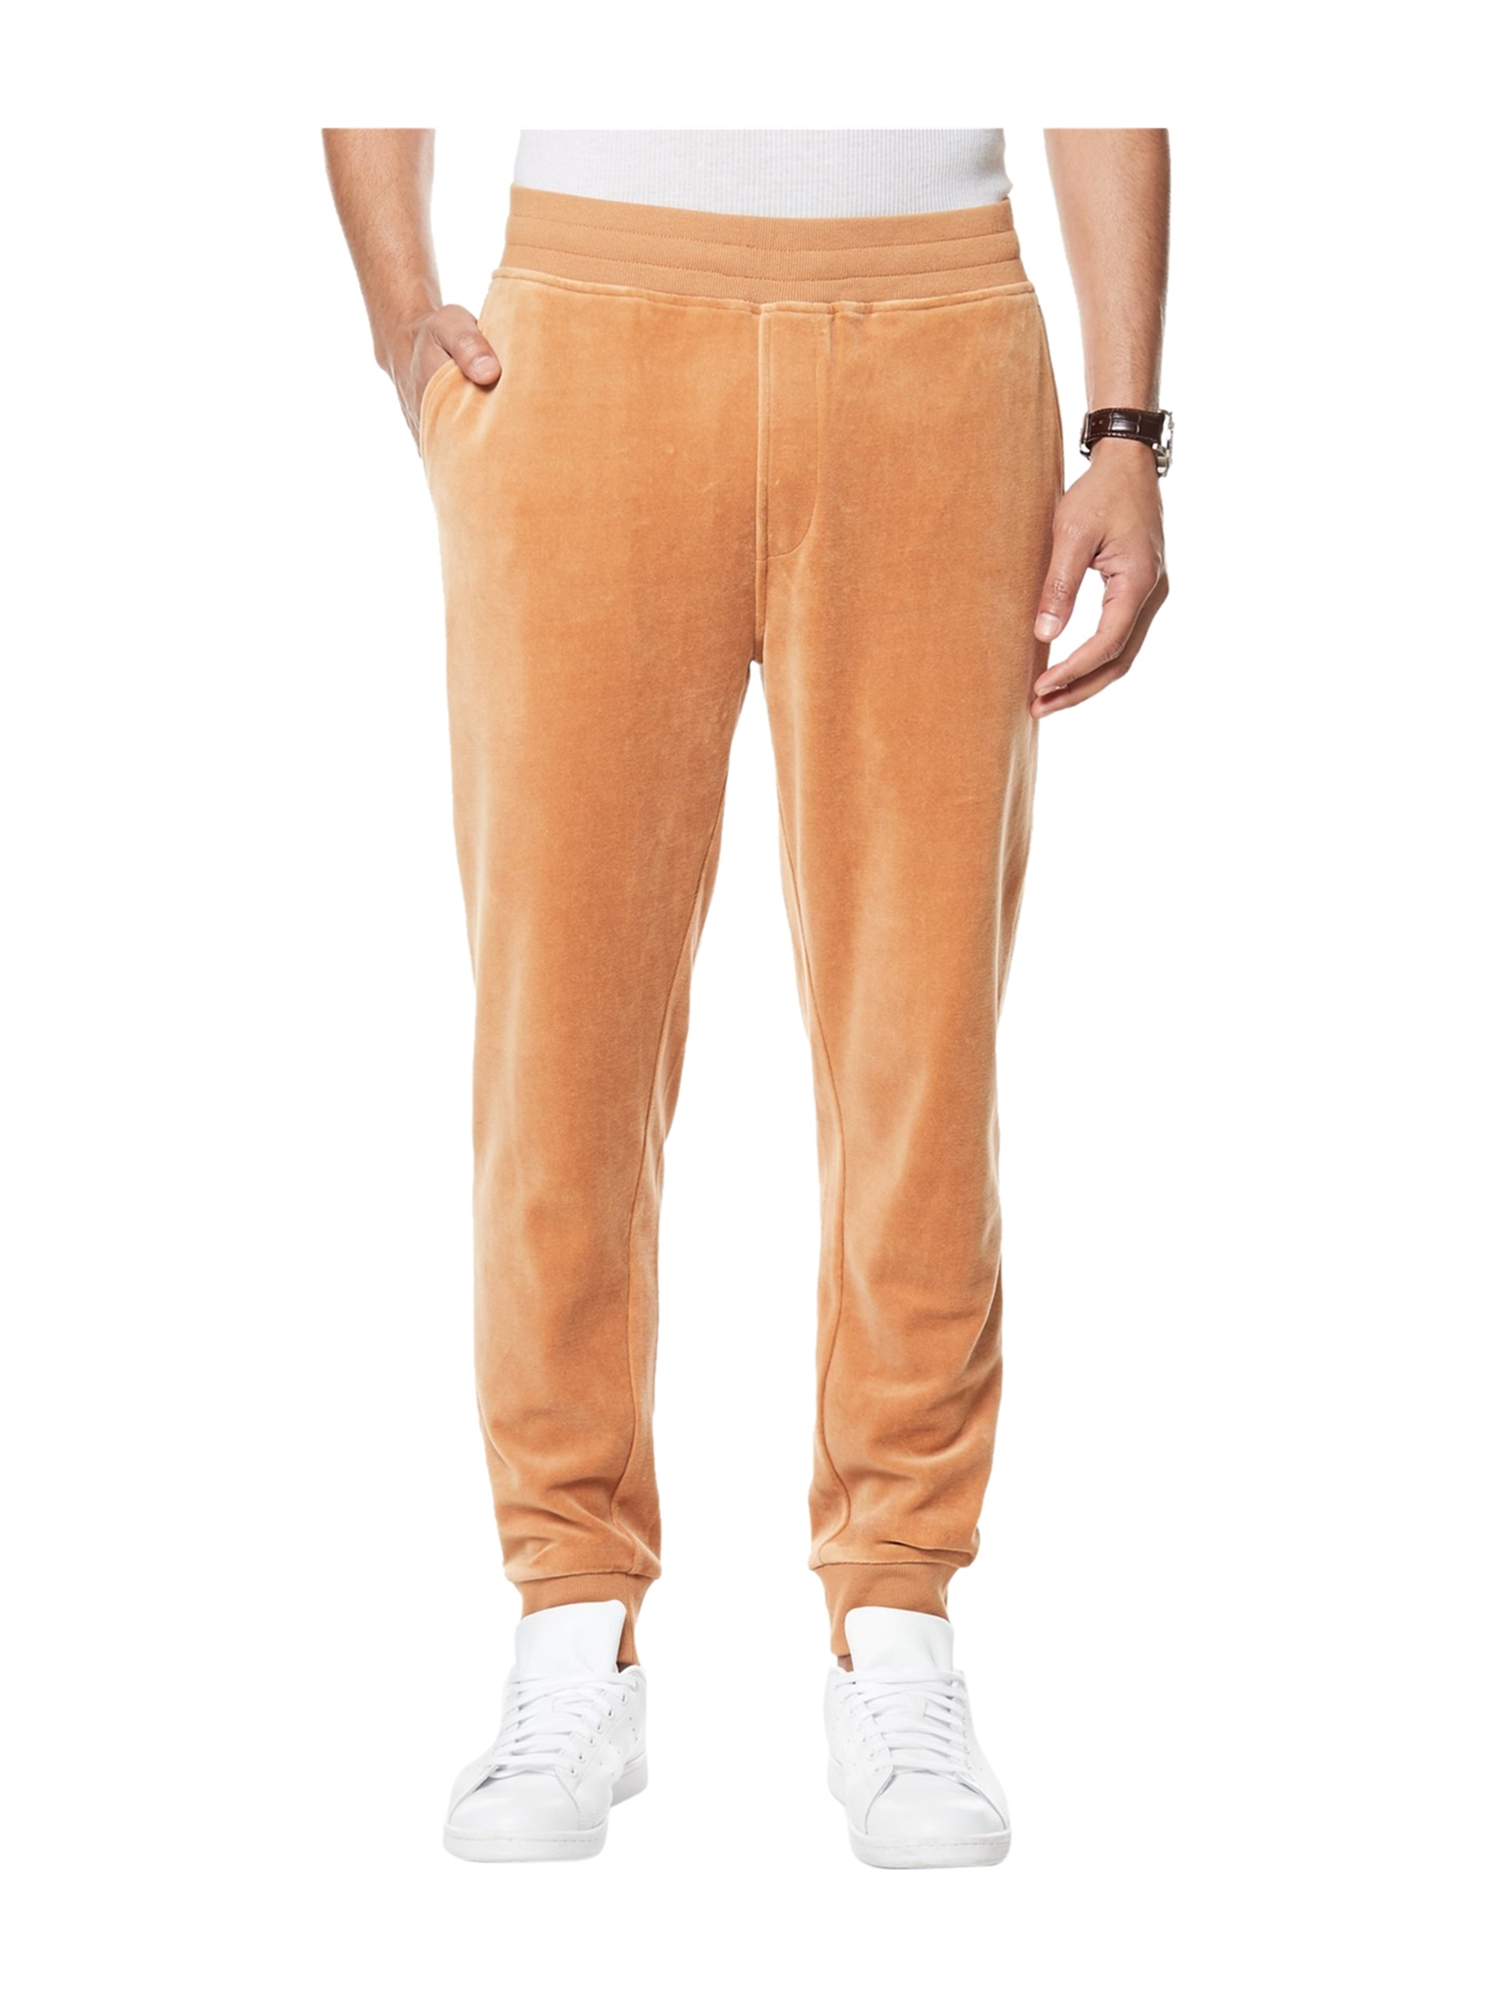 Sean John Mens Velour Travel Casual Jogger Pants